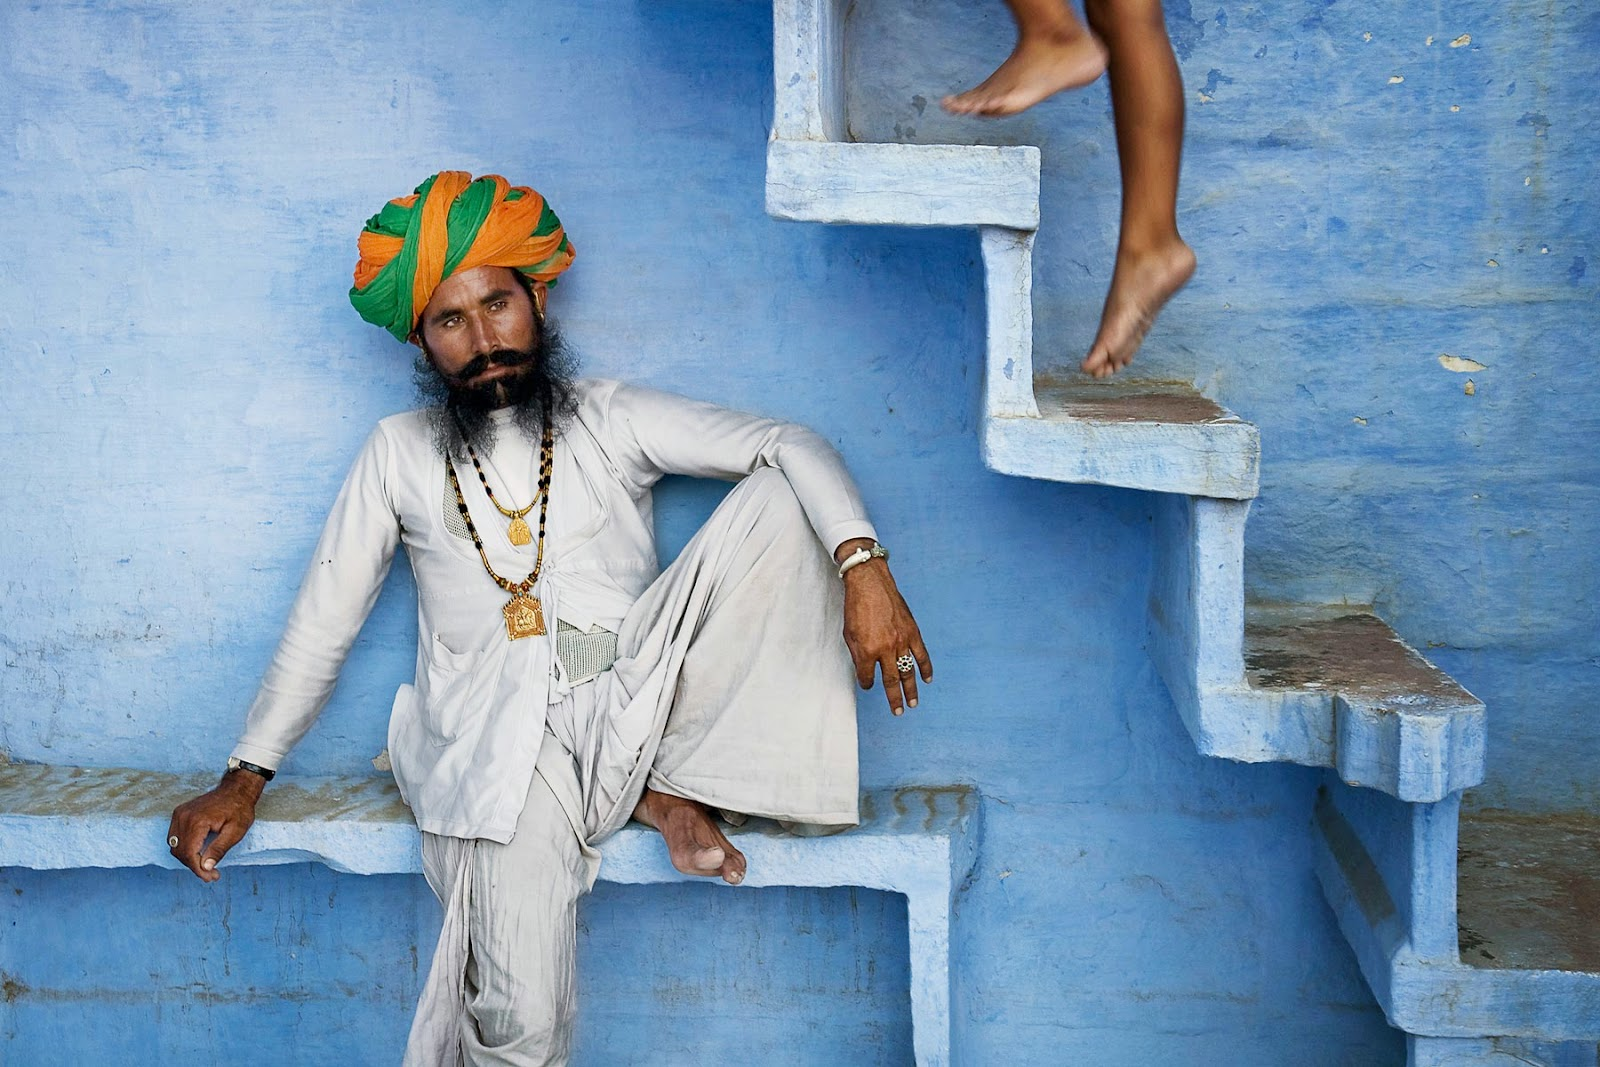 jodhpur steven mccurry